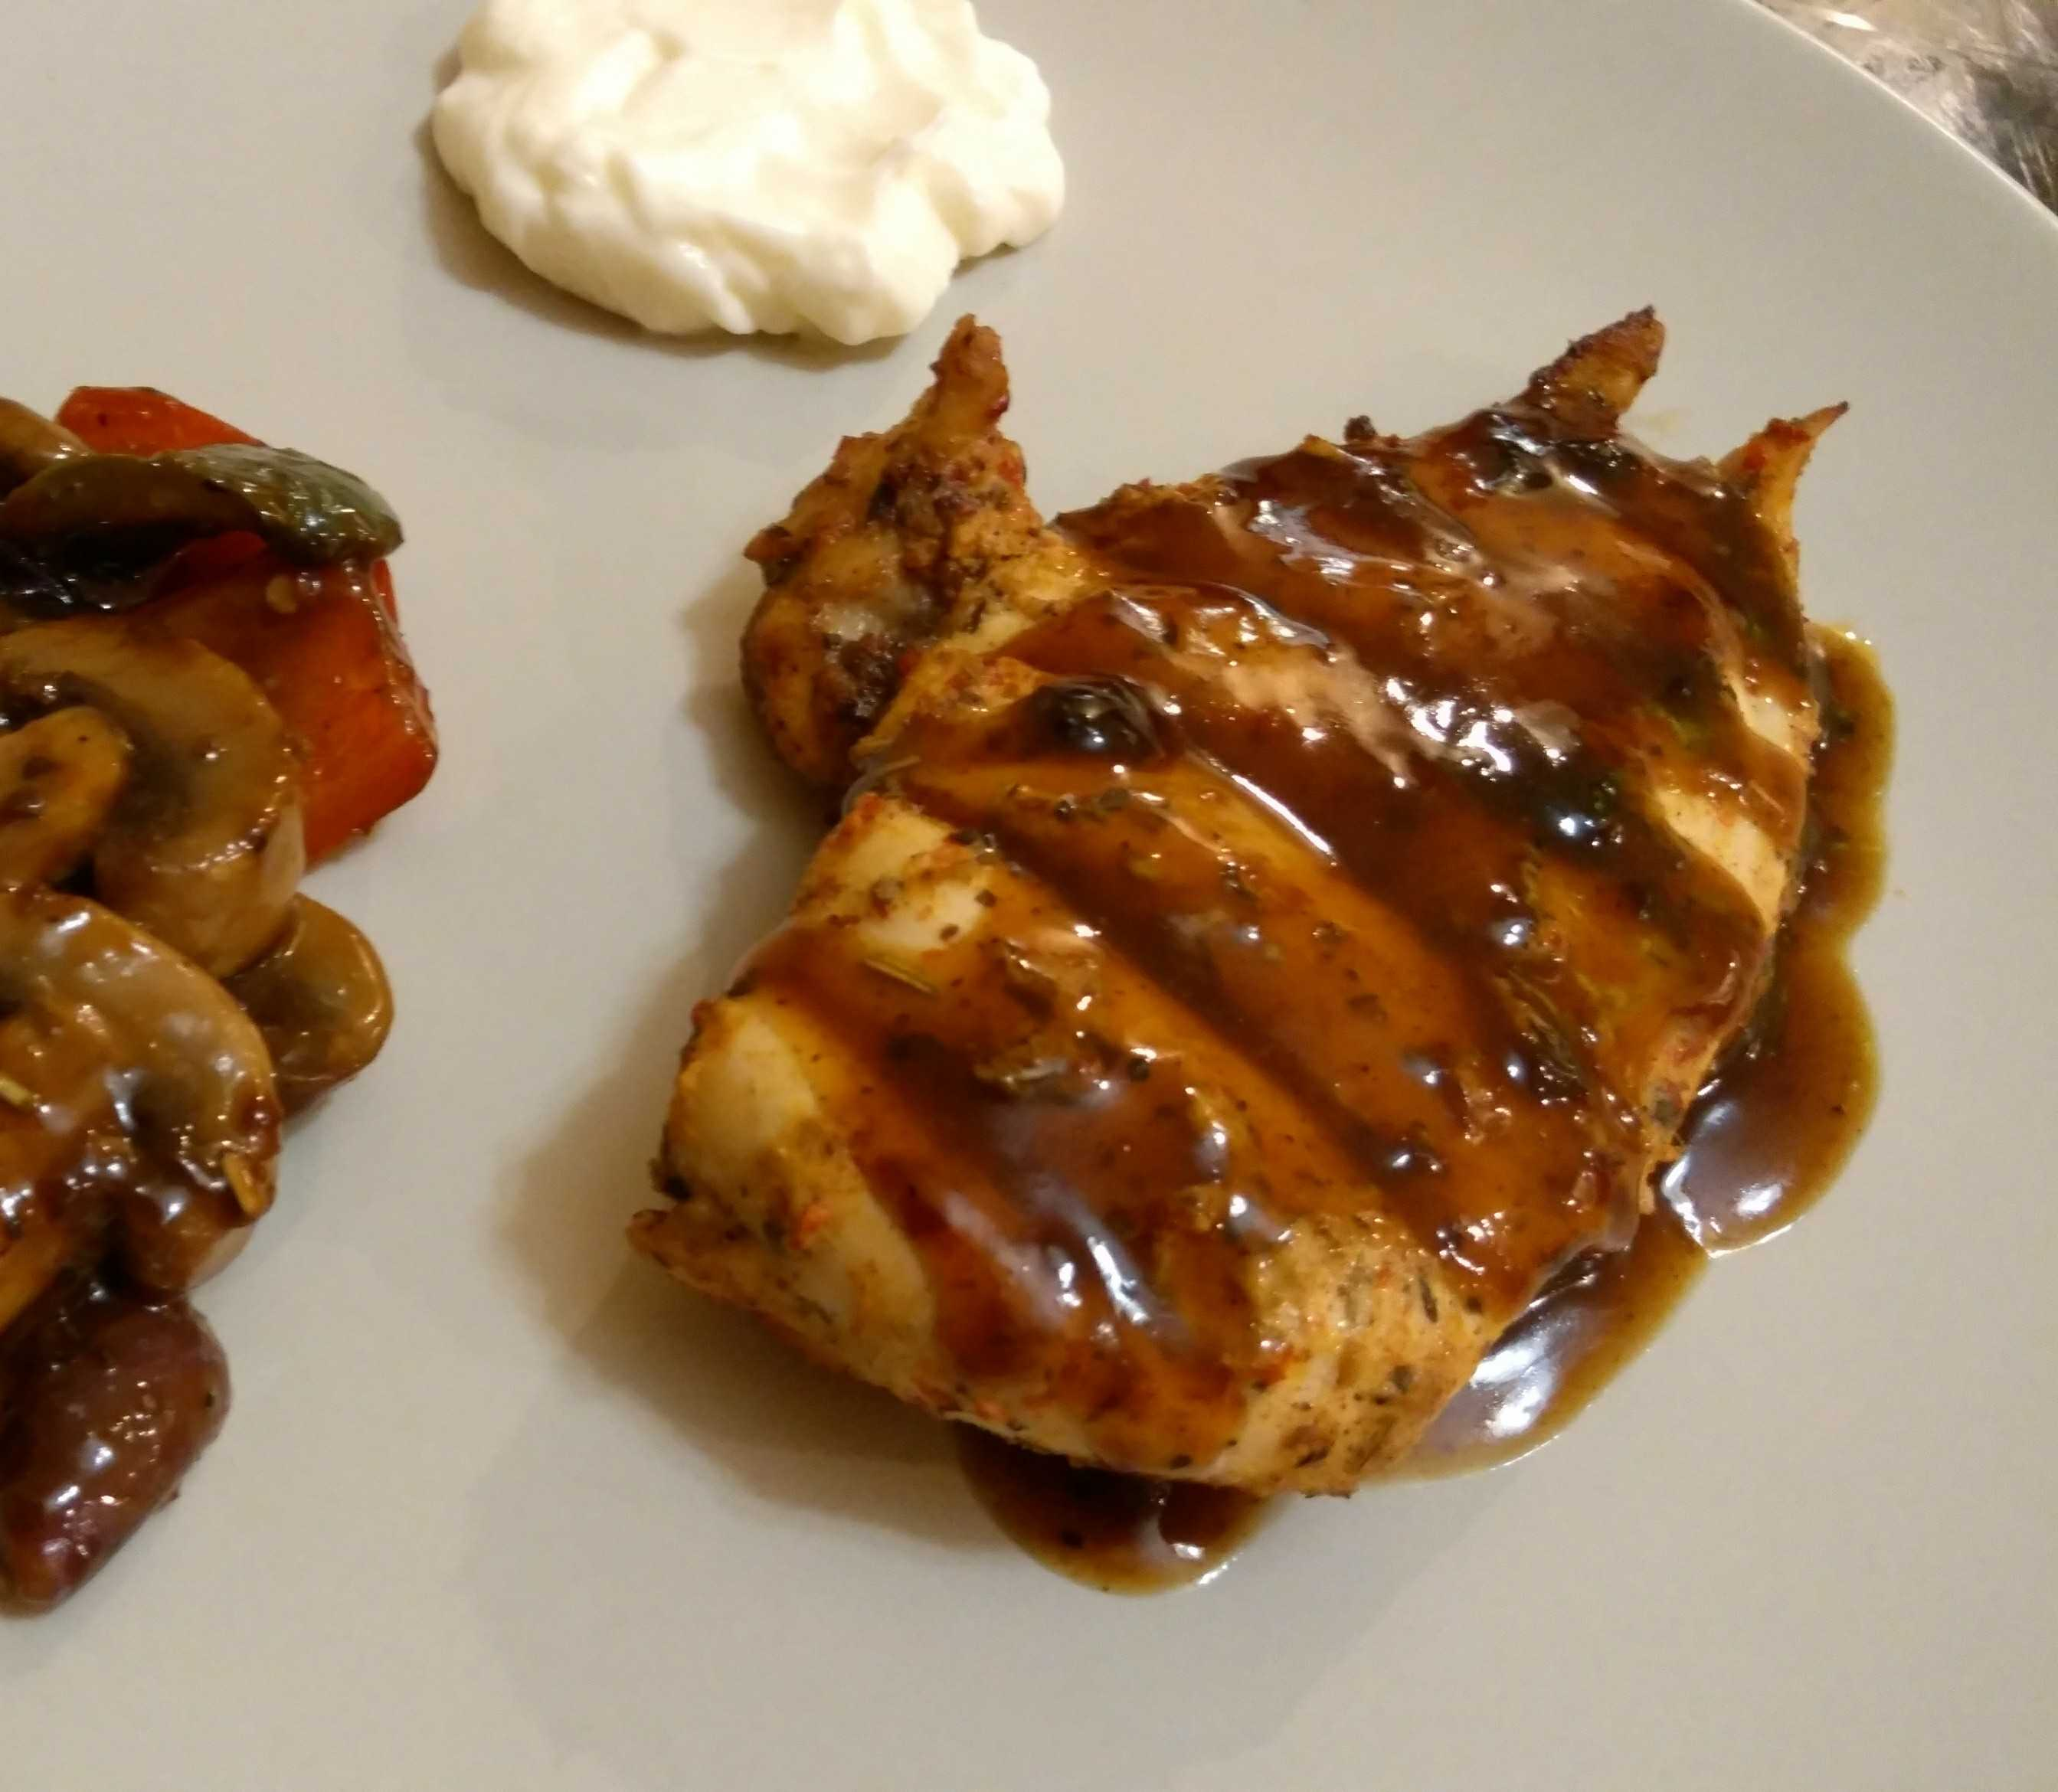 Grilled Chicken Breast With Barbeque Sauce